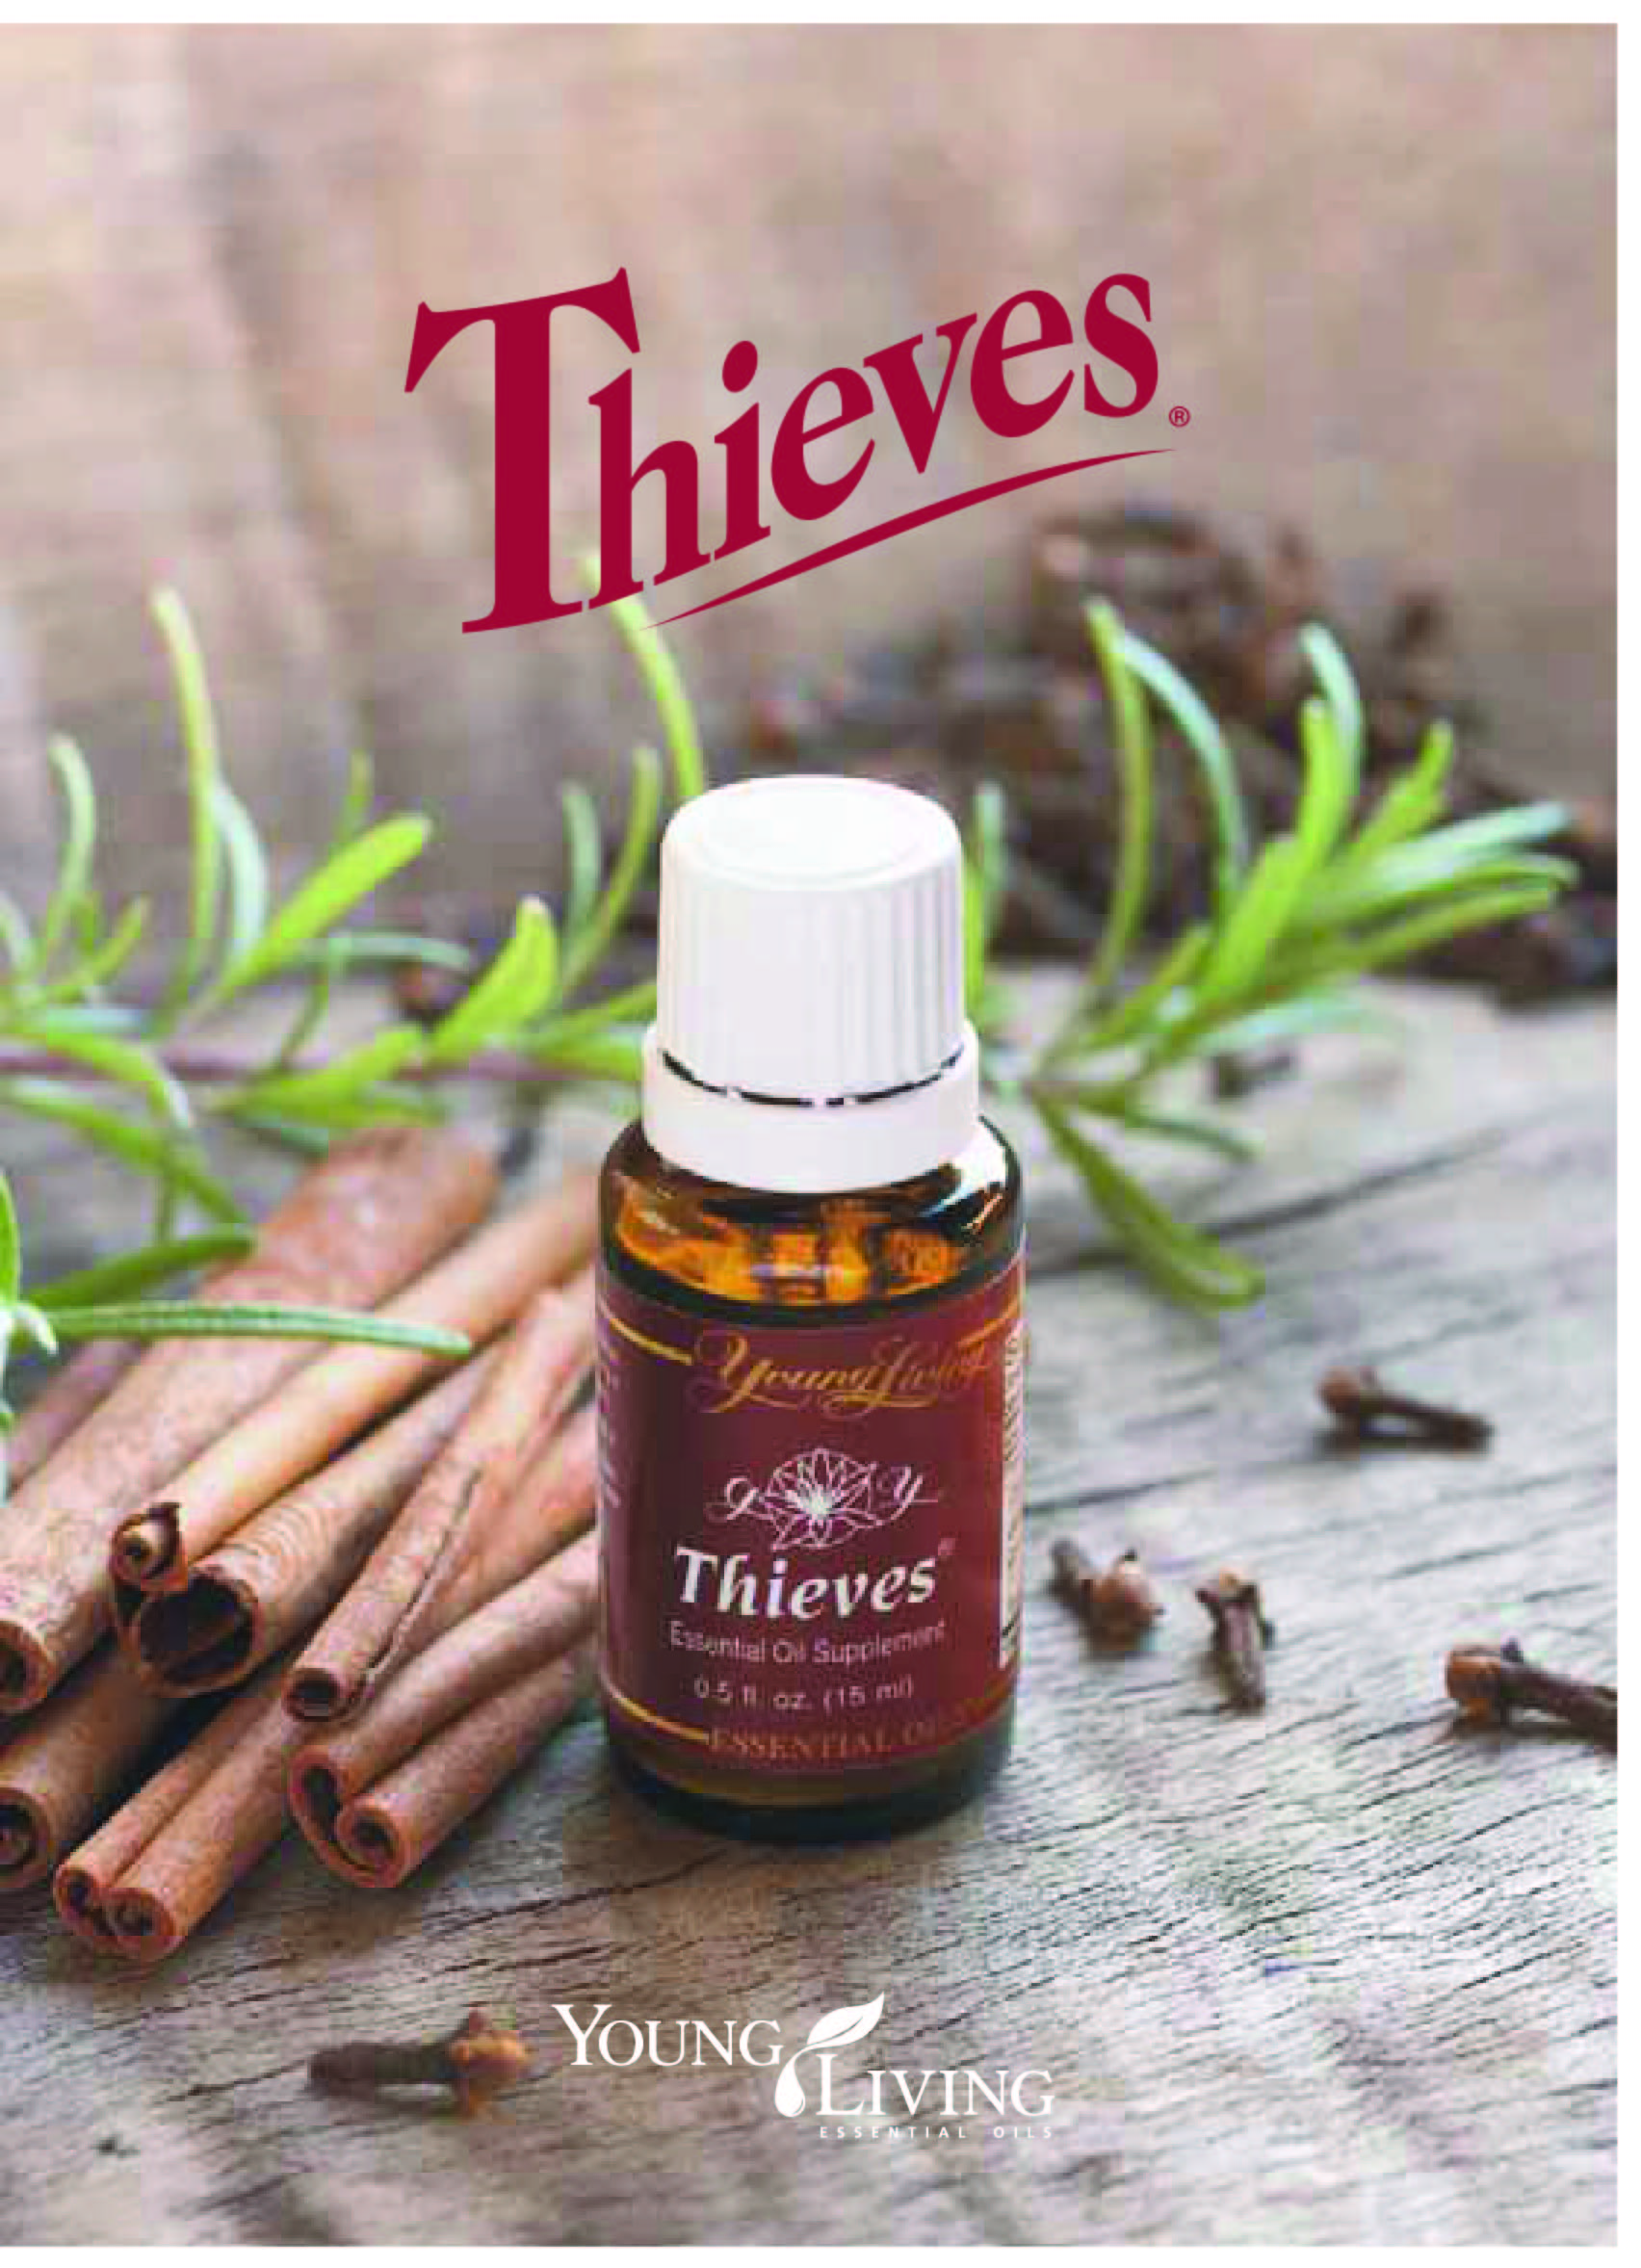 Theives Essential Oil Blend by Young Living